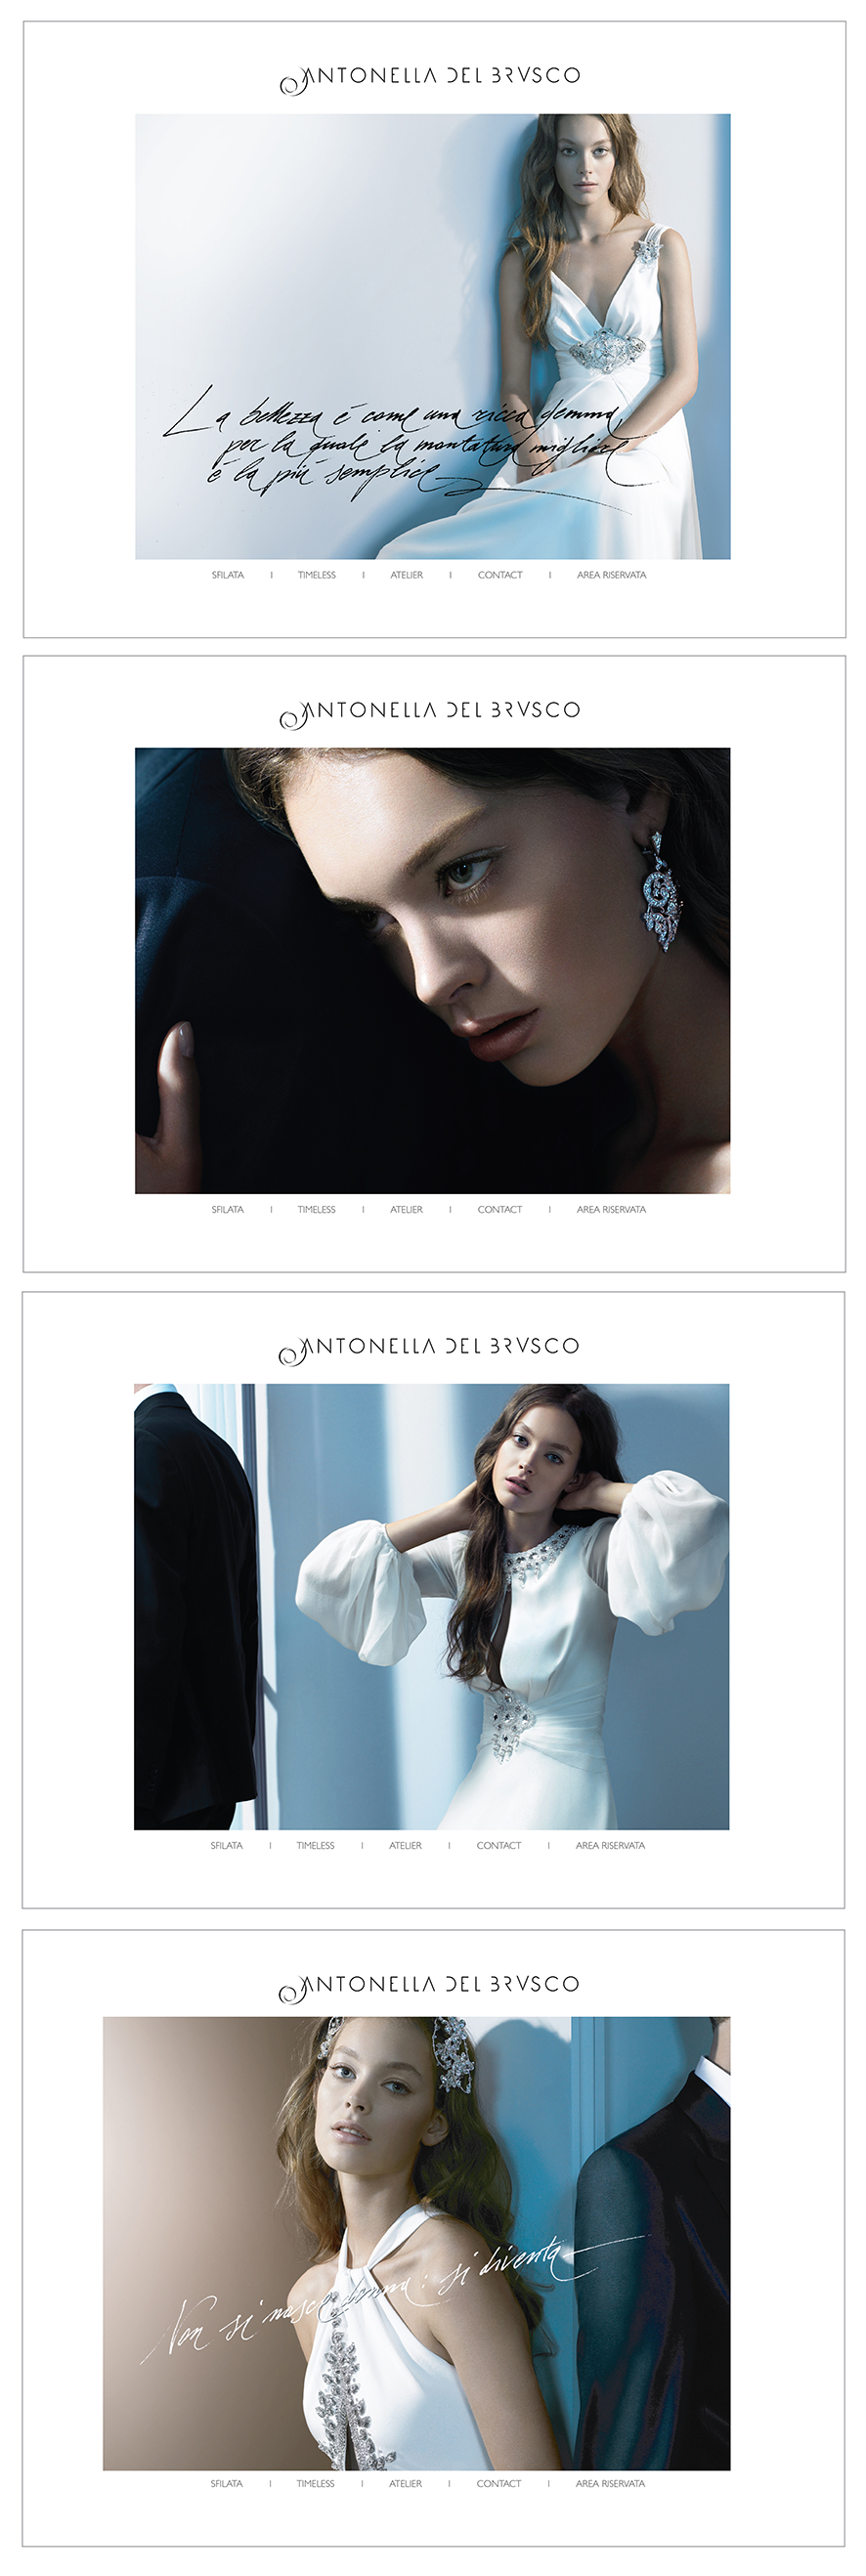 CLIENT - ANTONELLA DEL BRUSCO HOMEPAGE Emanuela Nazzani Executive Creative Director.